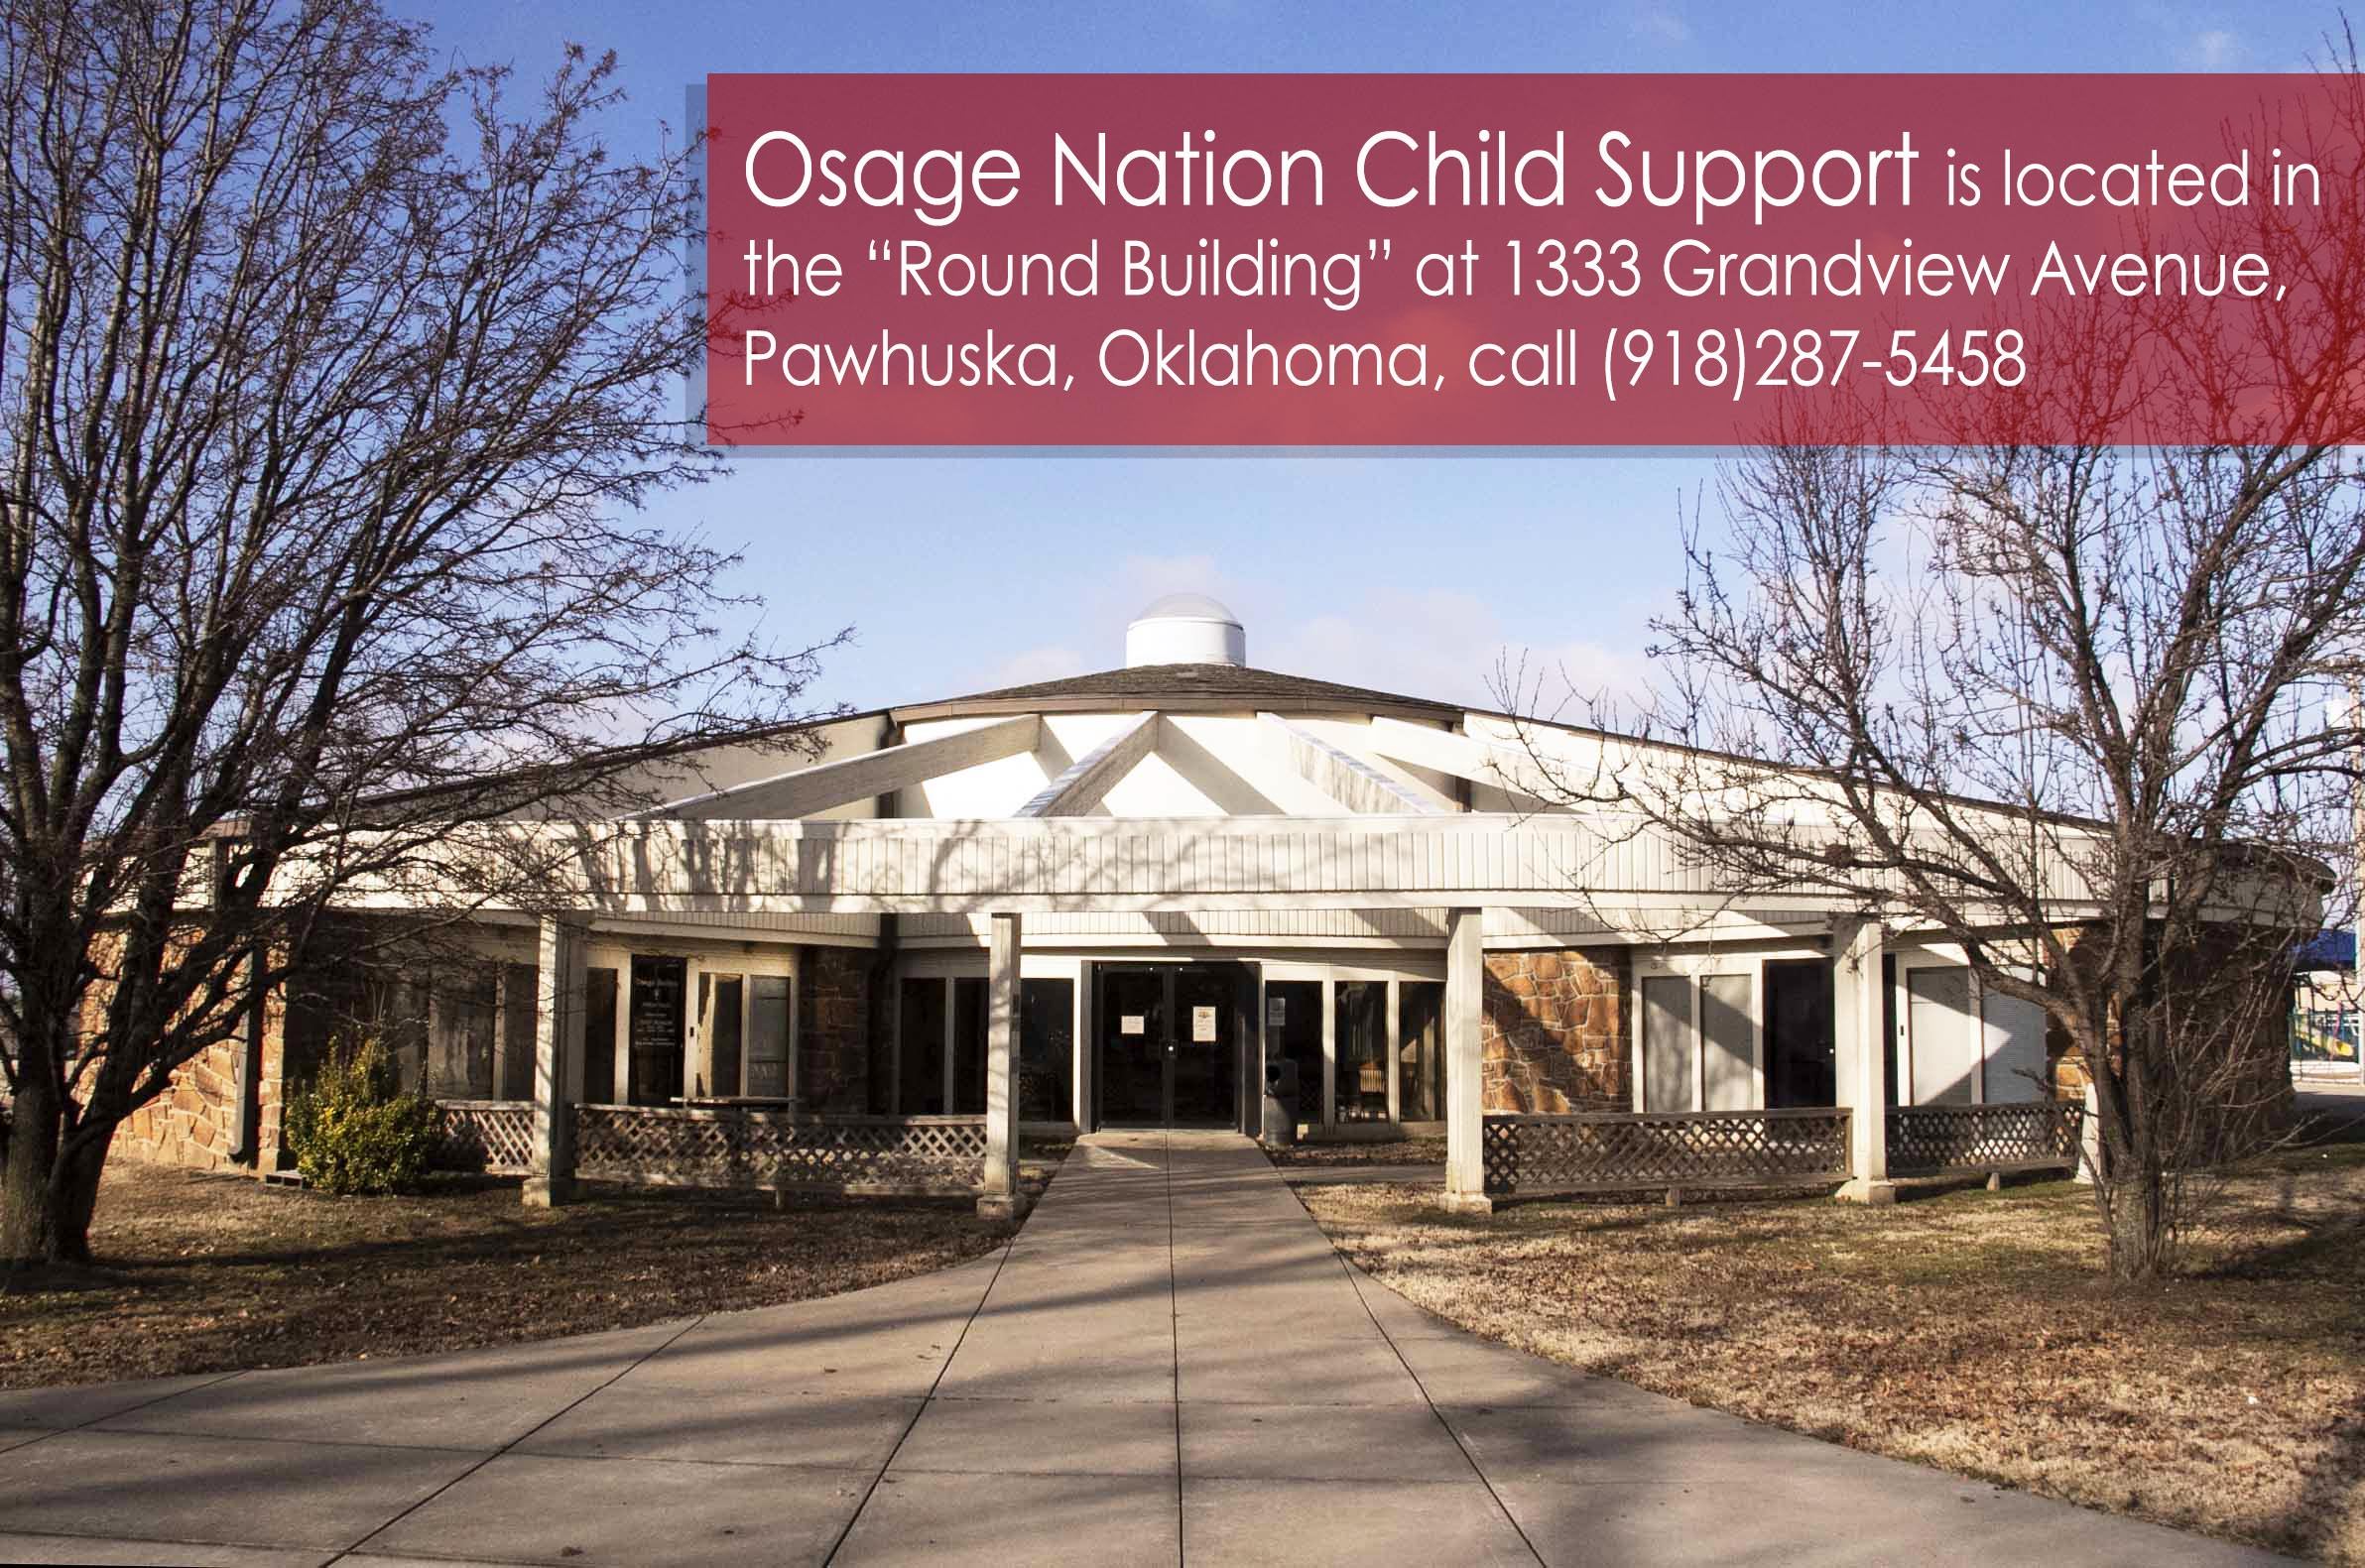 Child Support Services Osage Nation